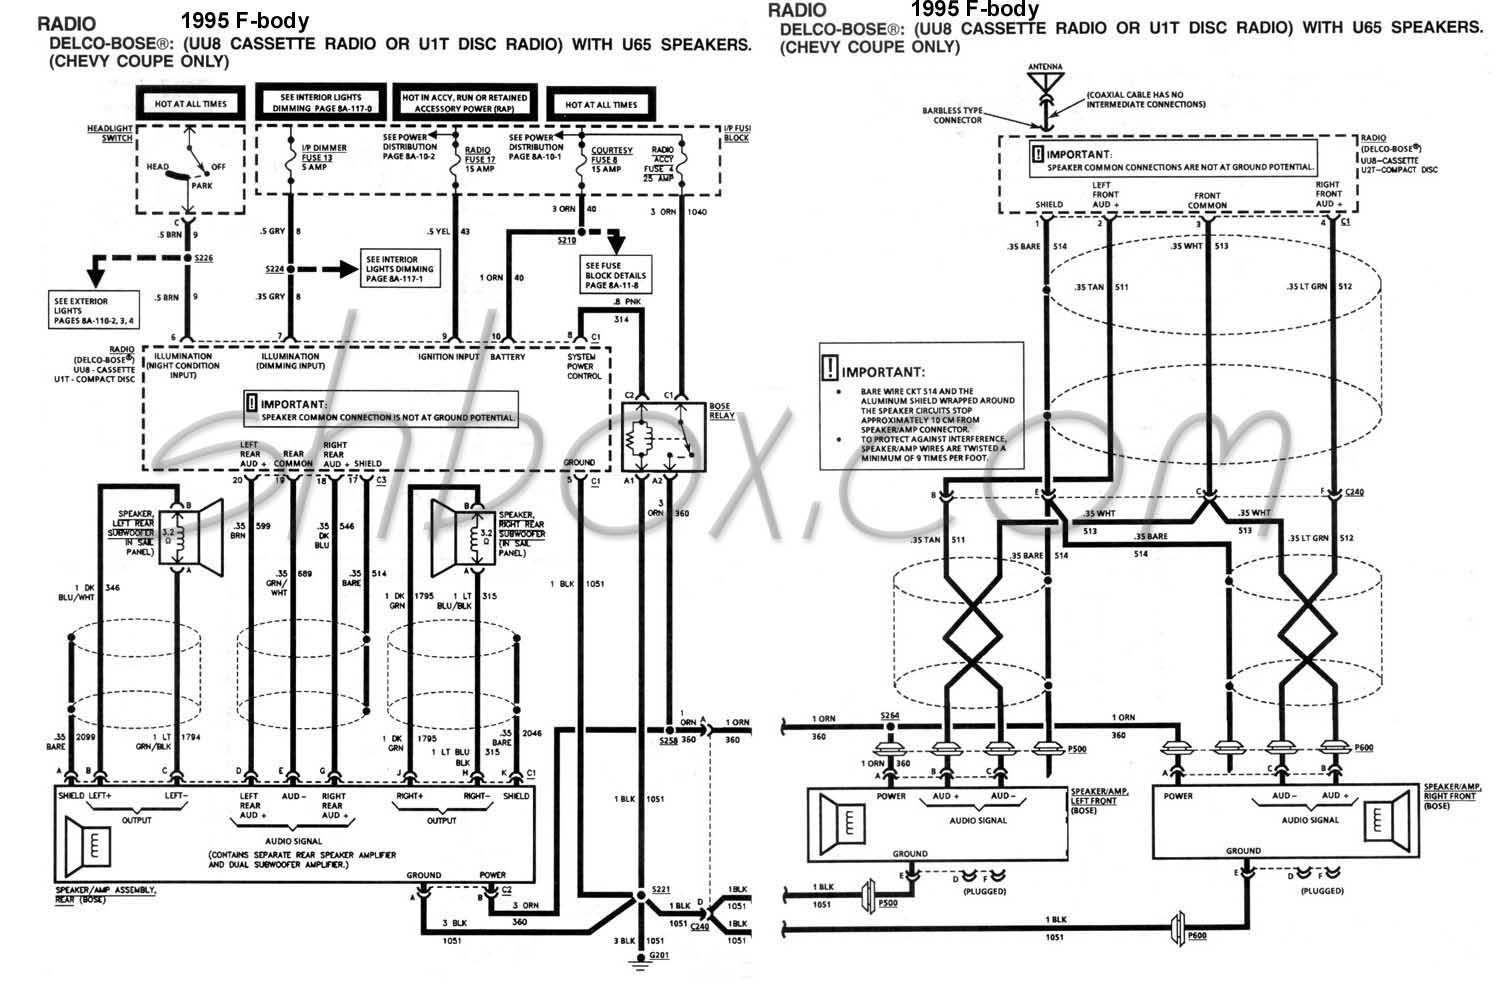 2002 pontiac sunfire radio wiring diagram single phase electric motor 4th gen lt1 f body tech aids bose schematic 1995 camaro